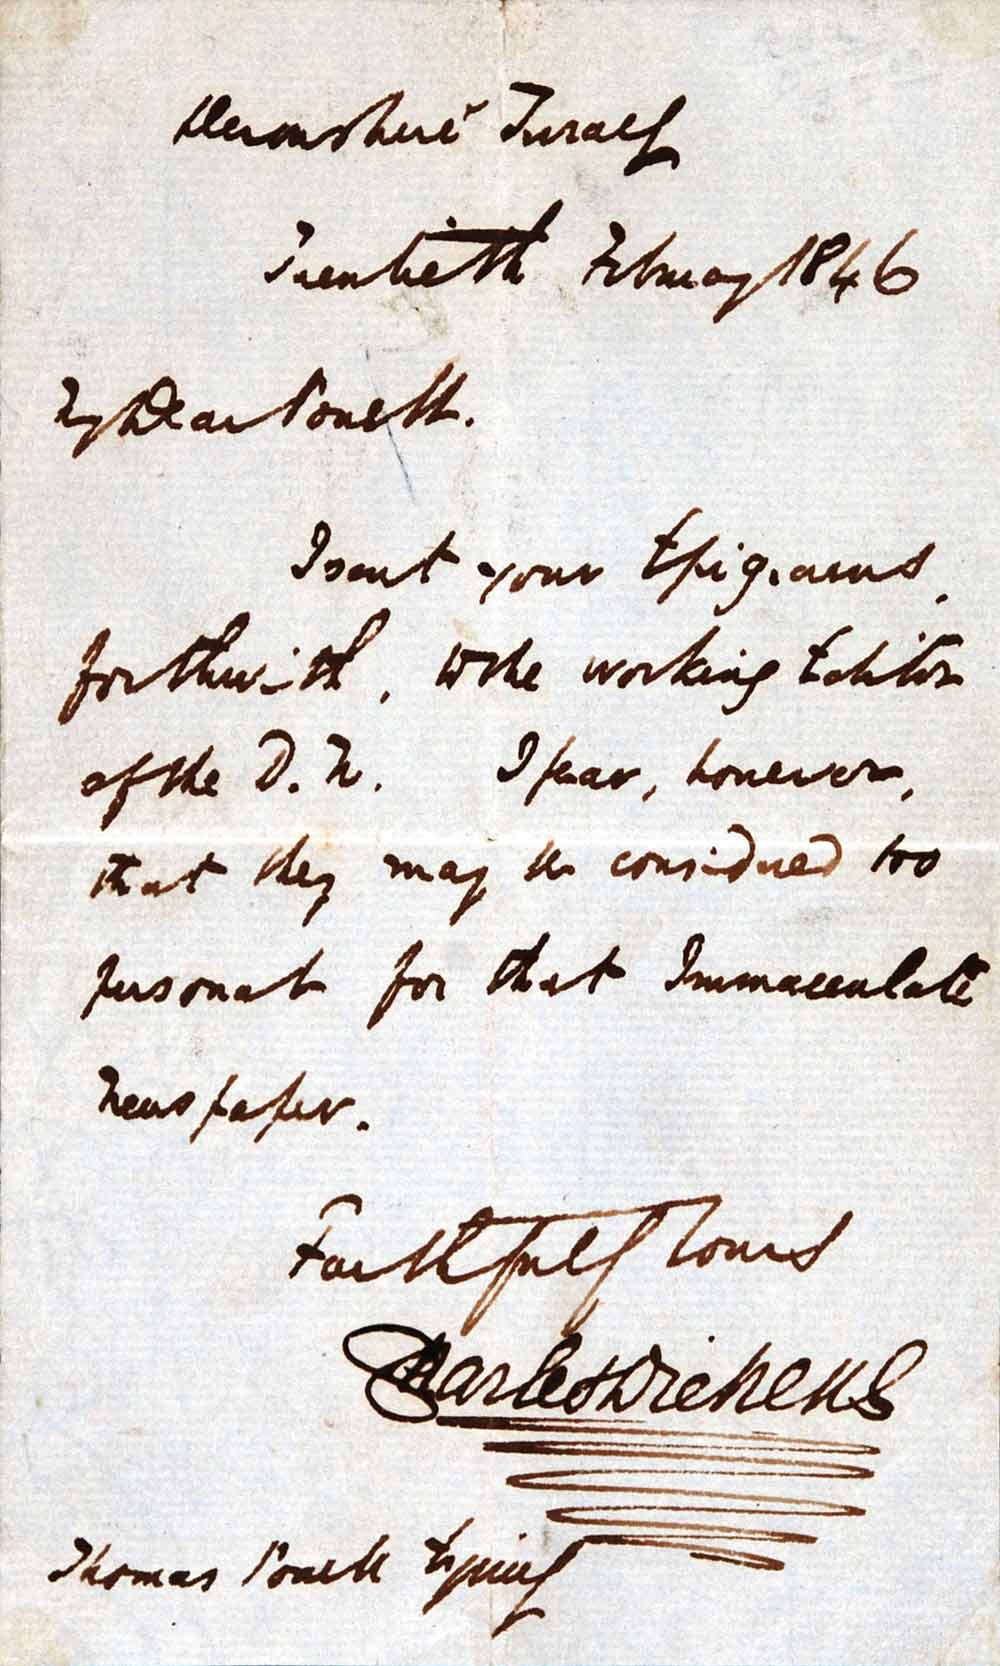 Letter. Charles Dickens to Thomas Powell, 1 Devonshire Terrace, 20 February 1846